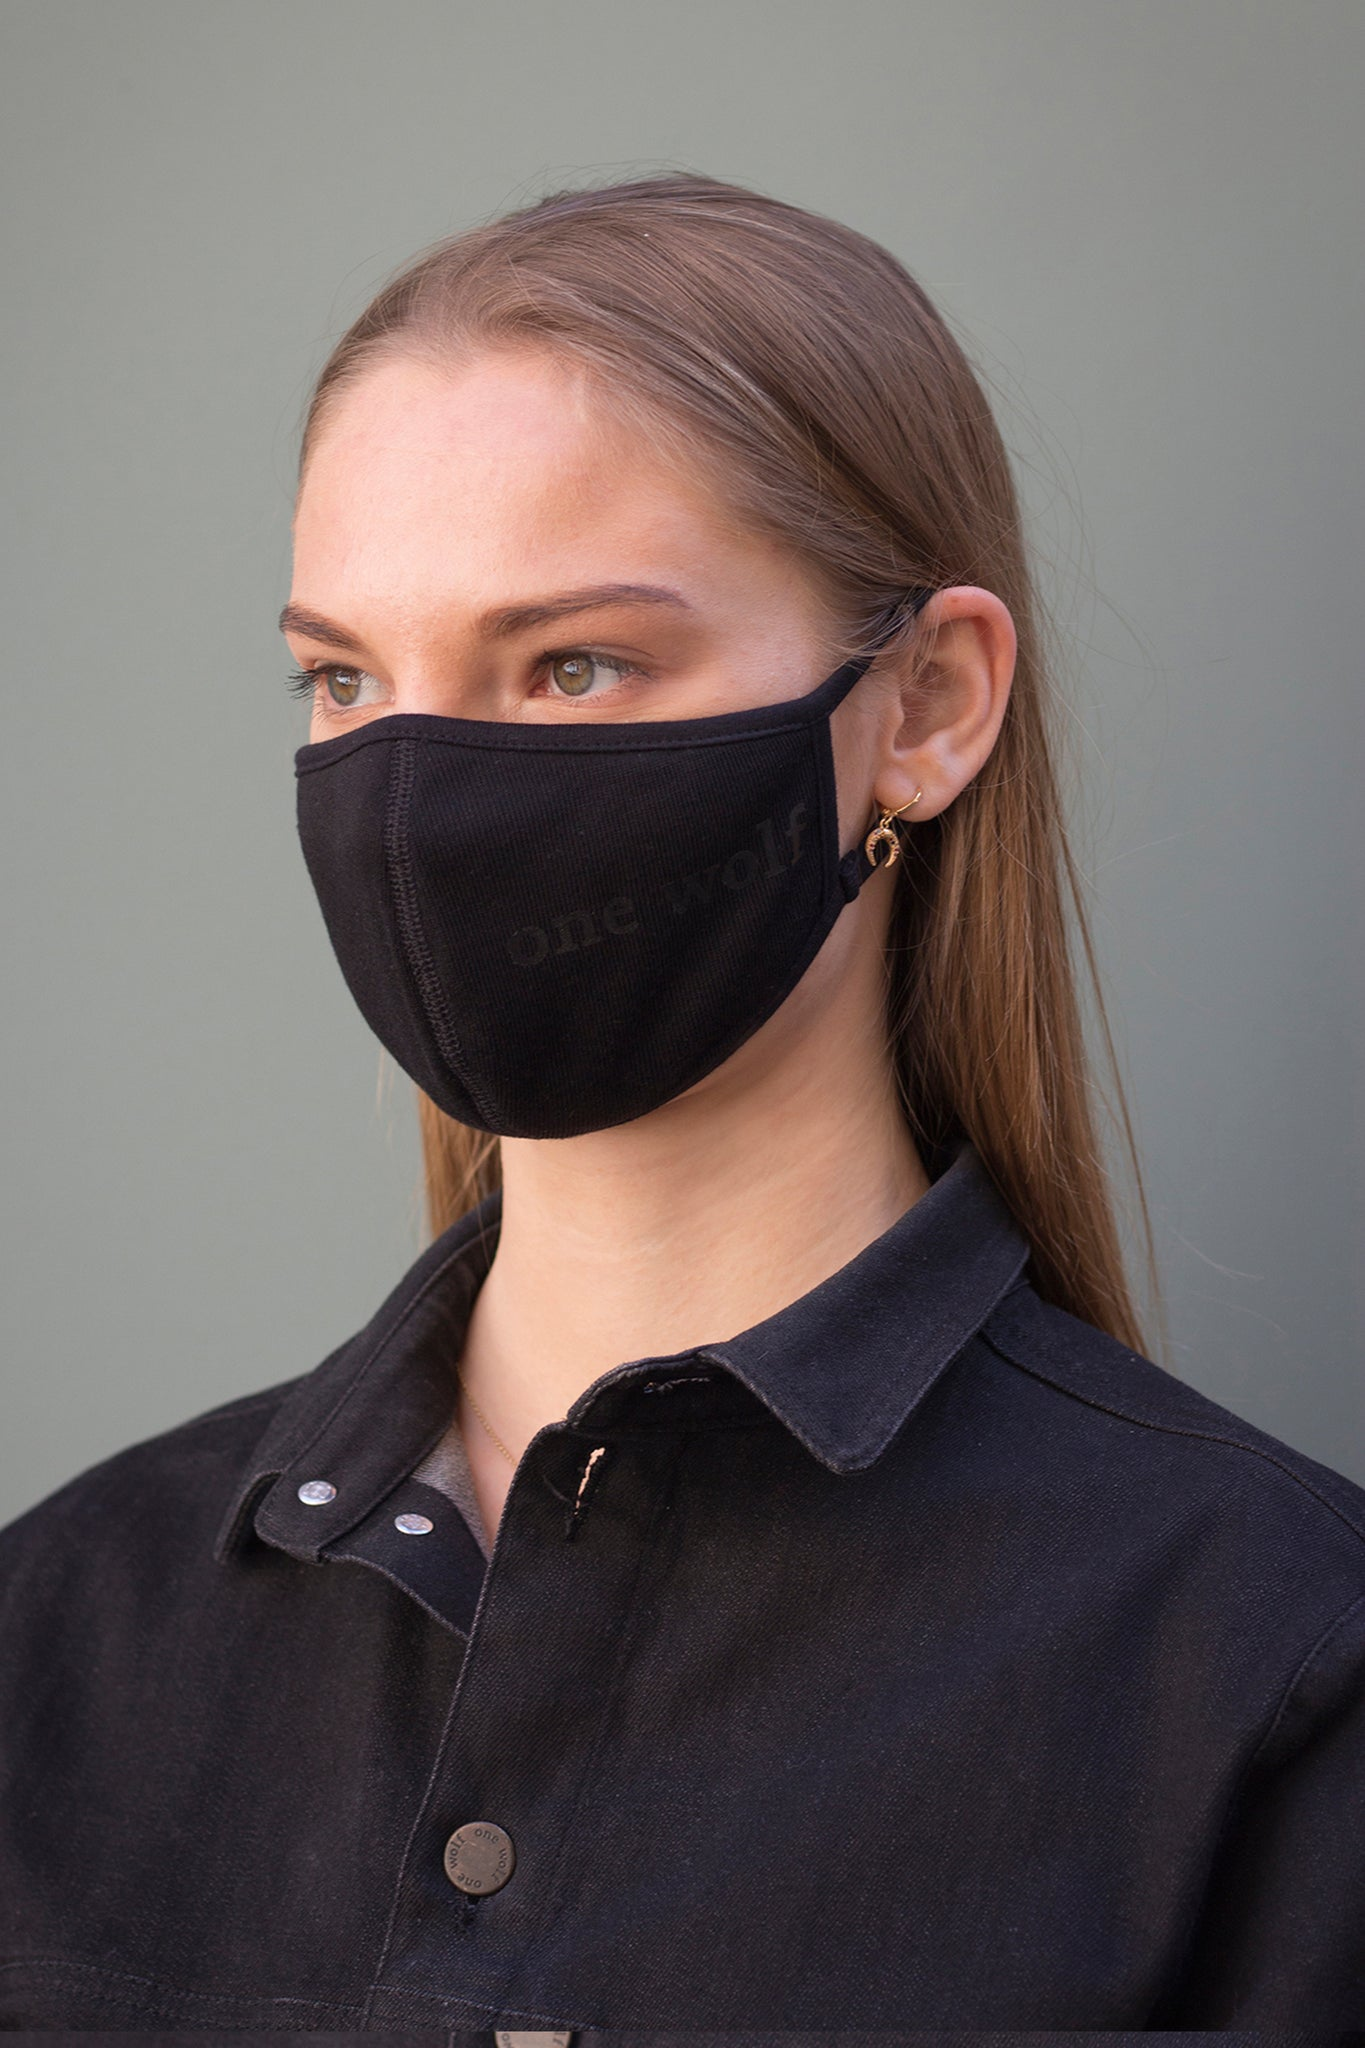 One Wolf CITY facewear mask - One Wolf